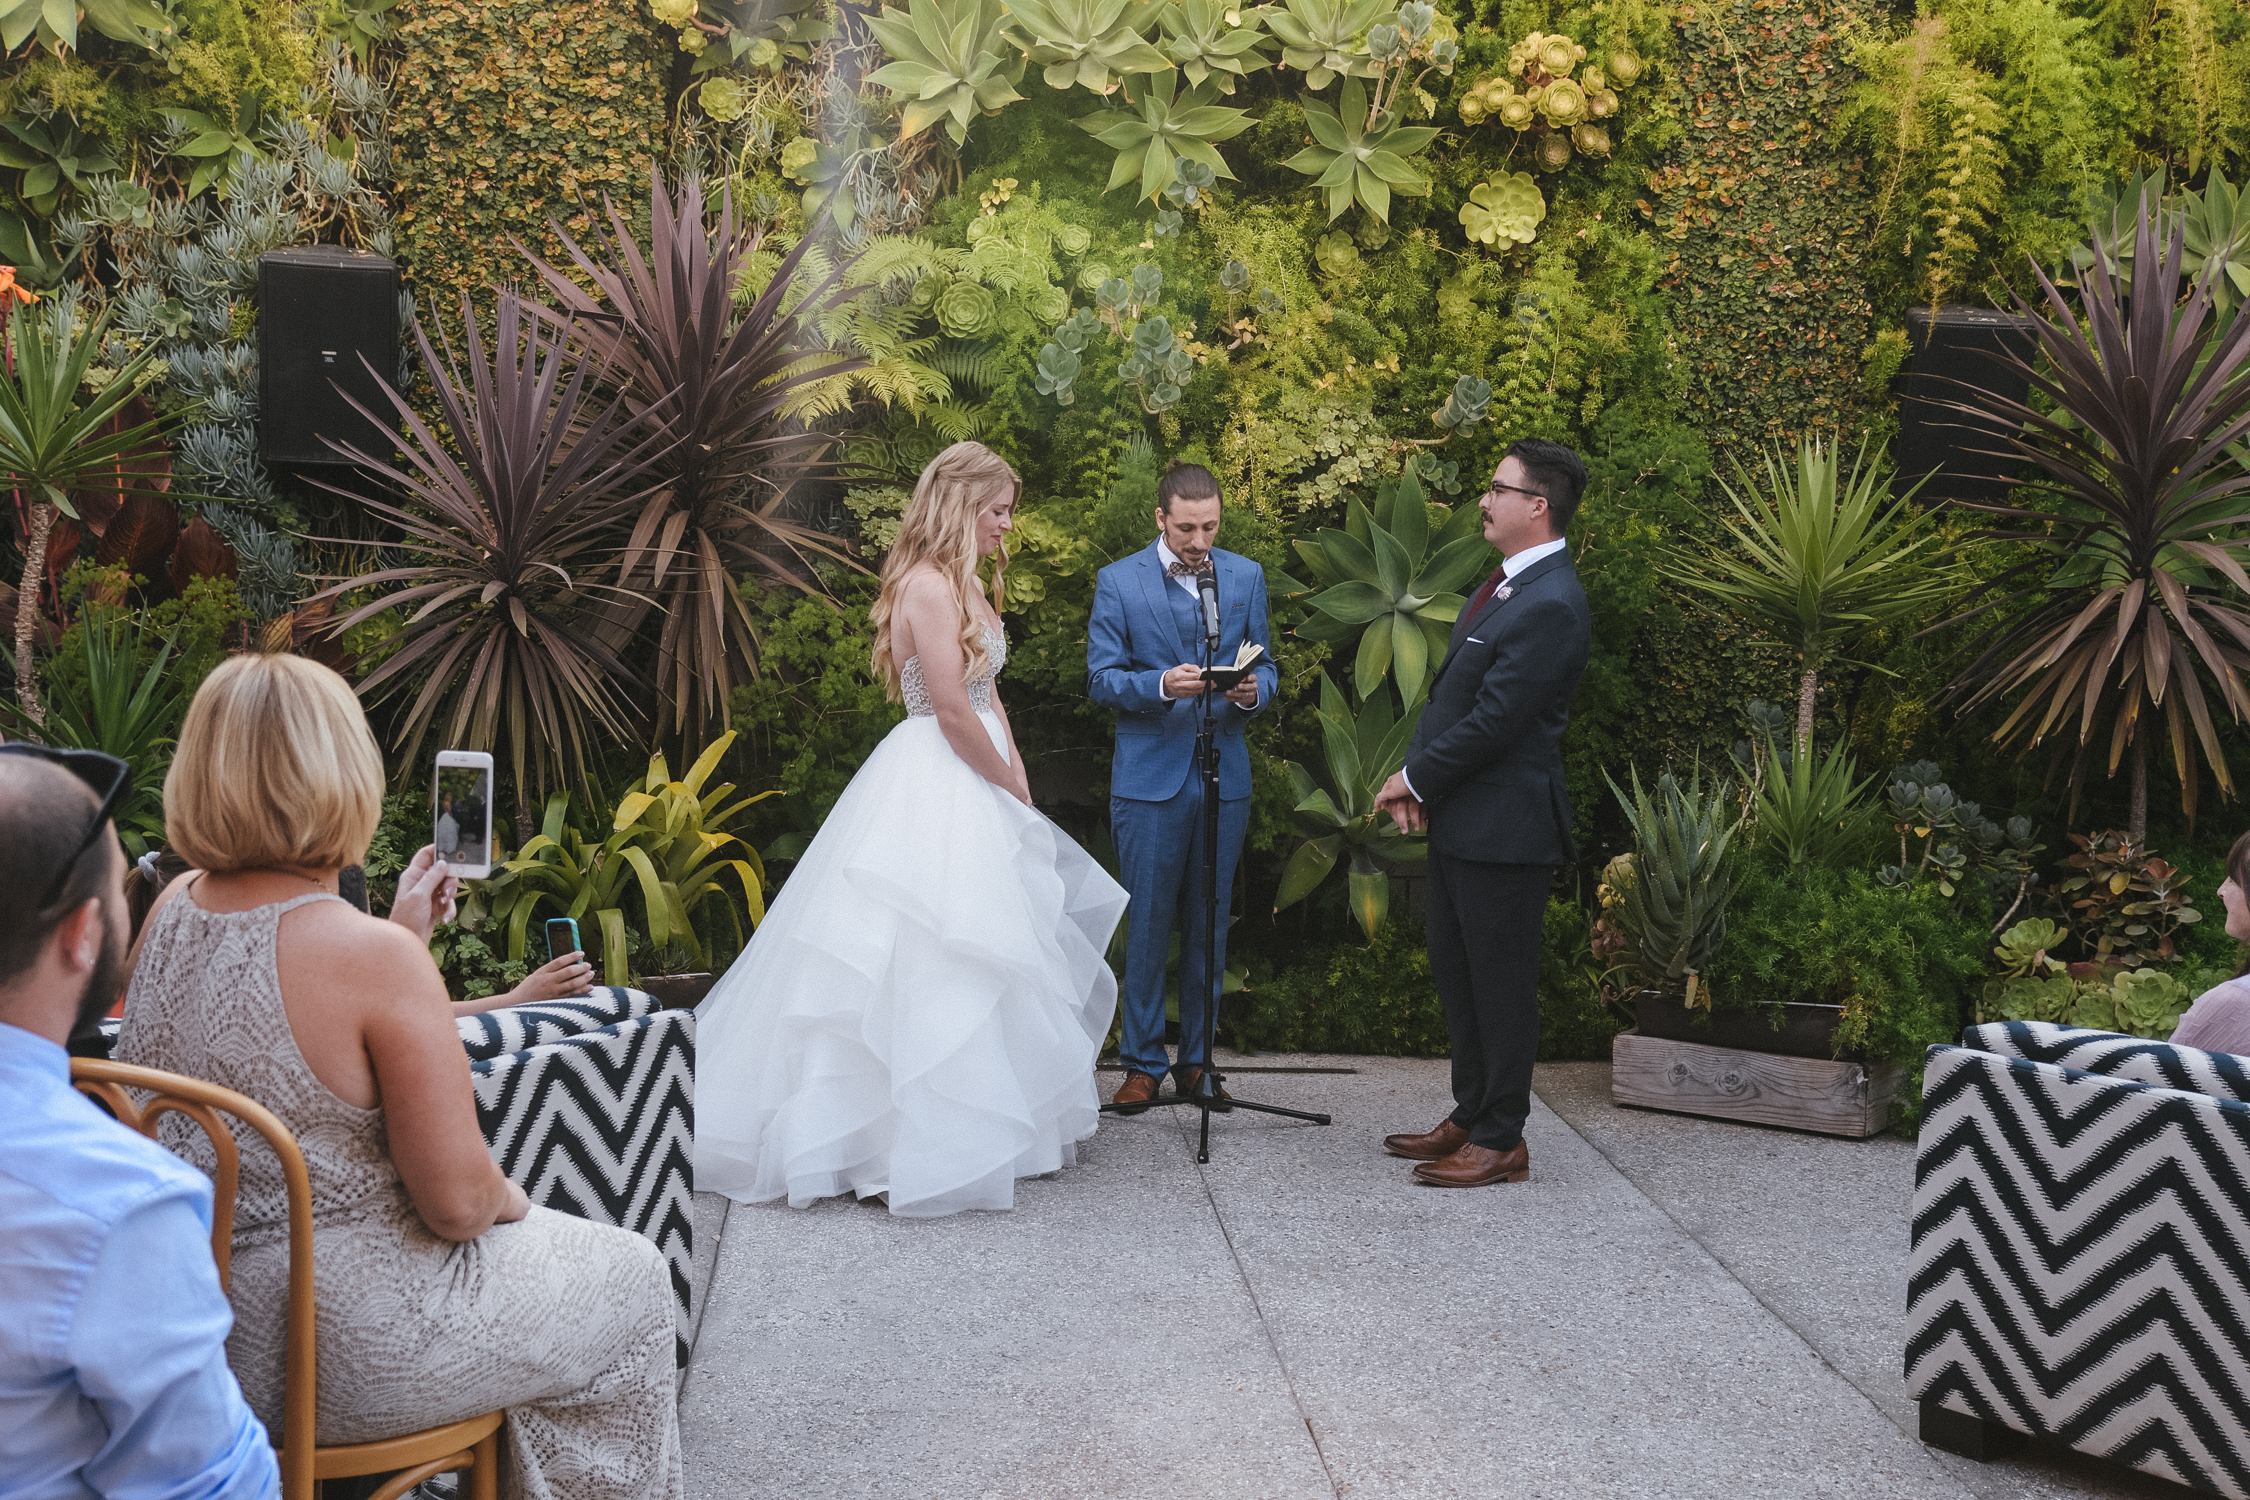 The ceremony backdrop was an incrdible live wall with succulents and other tropical plants. No need for an arch with this beauty.